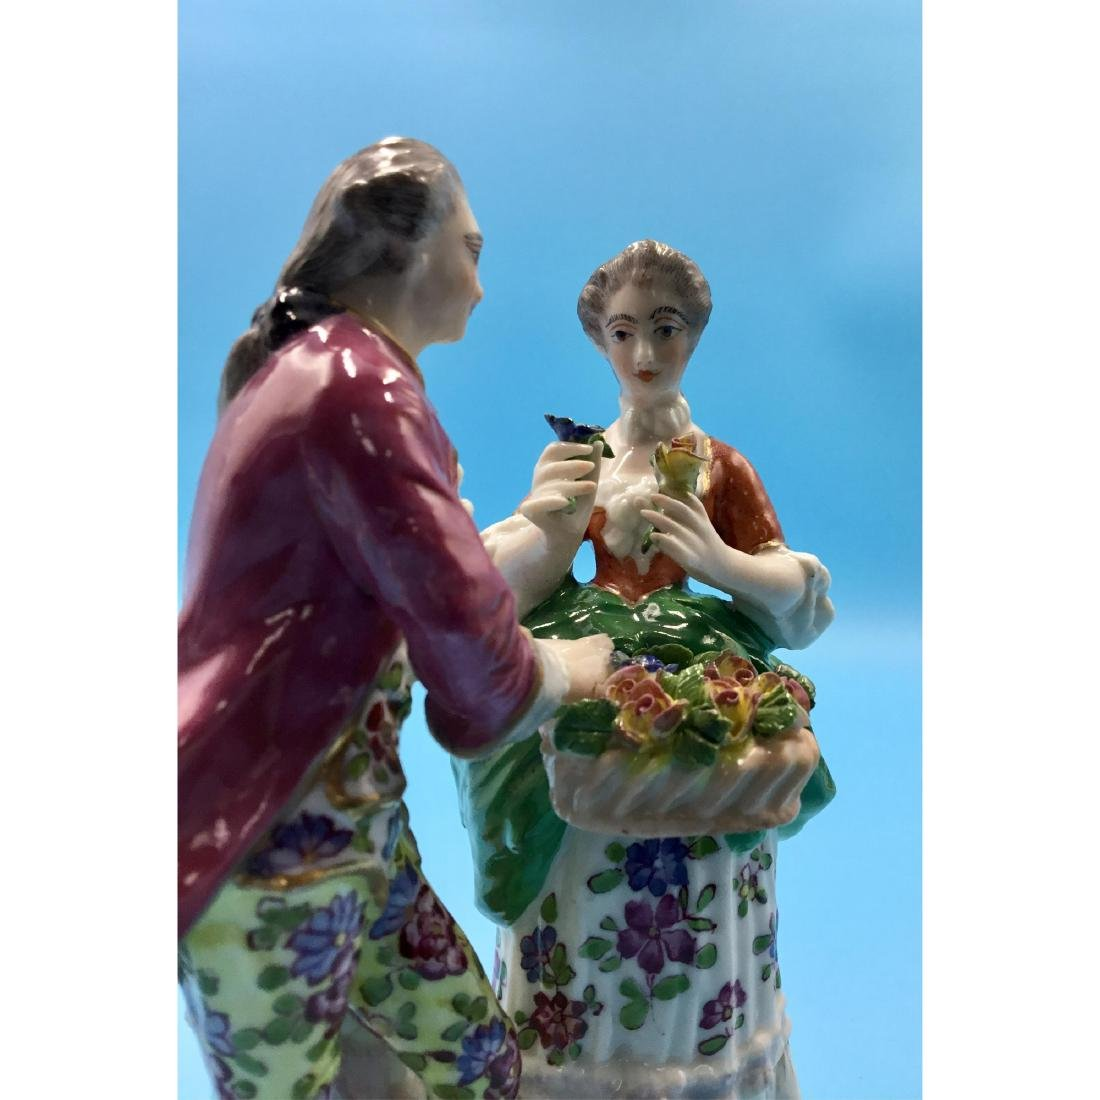 GROUP OF 3 SAMSON FRENCH PORCELAIN FIGURINES - 9